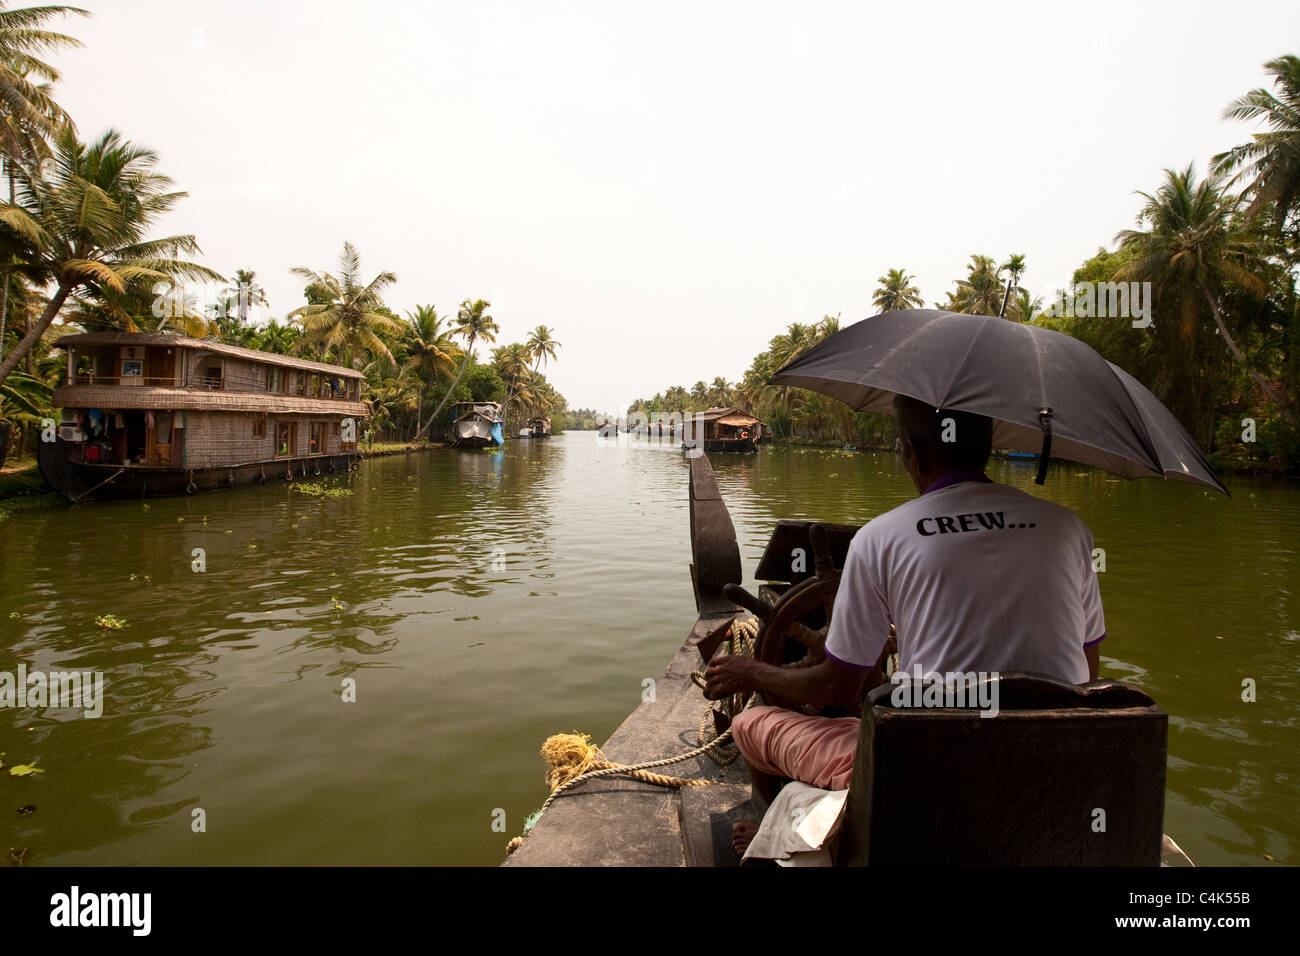 Cruising in the backwaters of Alleppey - Stock Image